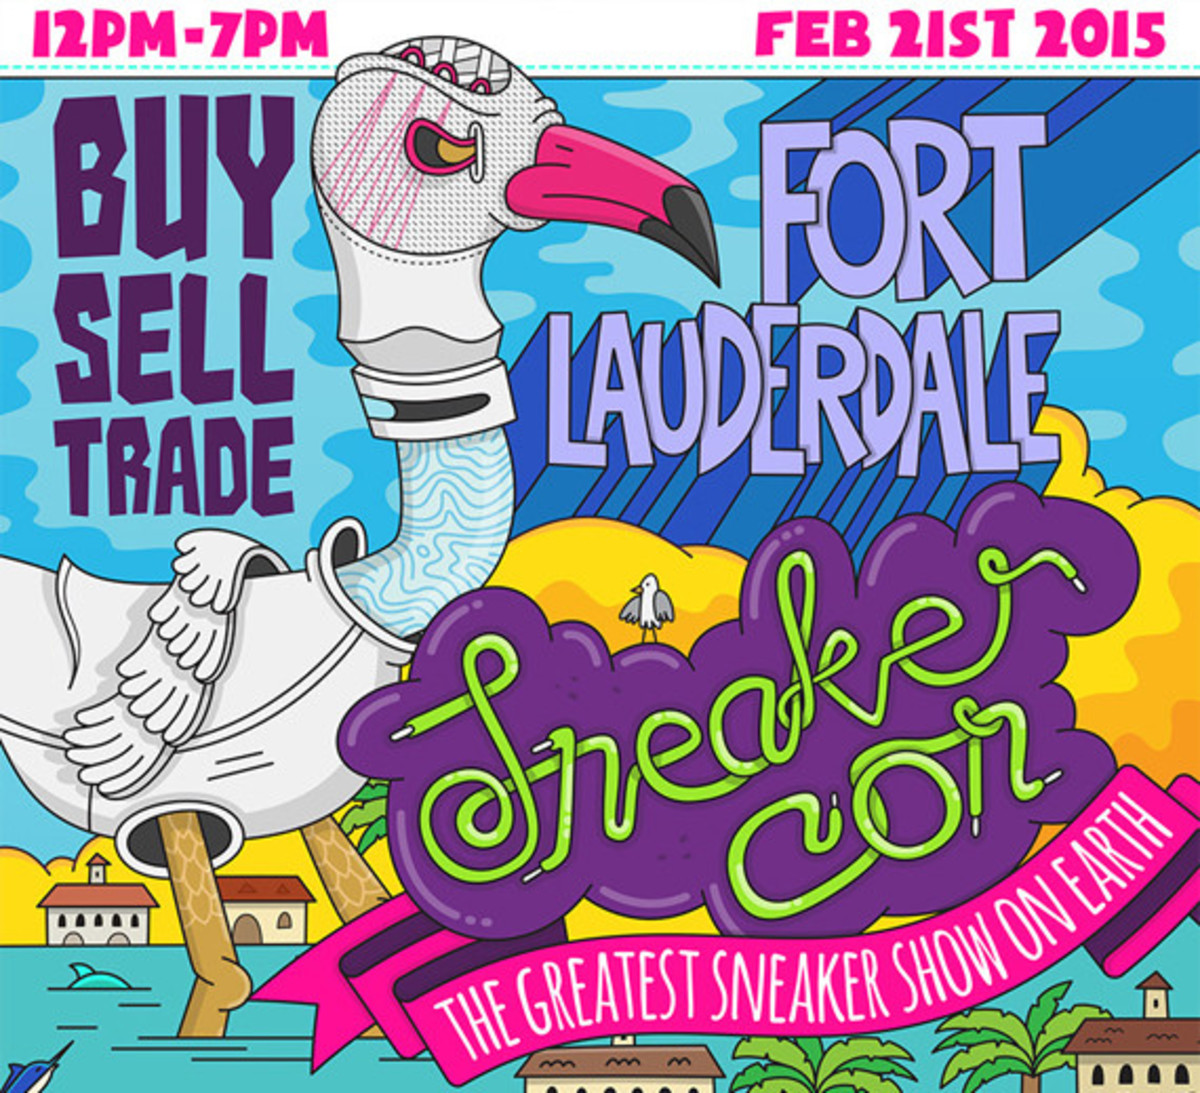 sneaker-con-fort-lauderdale-february-2015-reminder-01